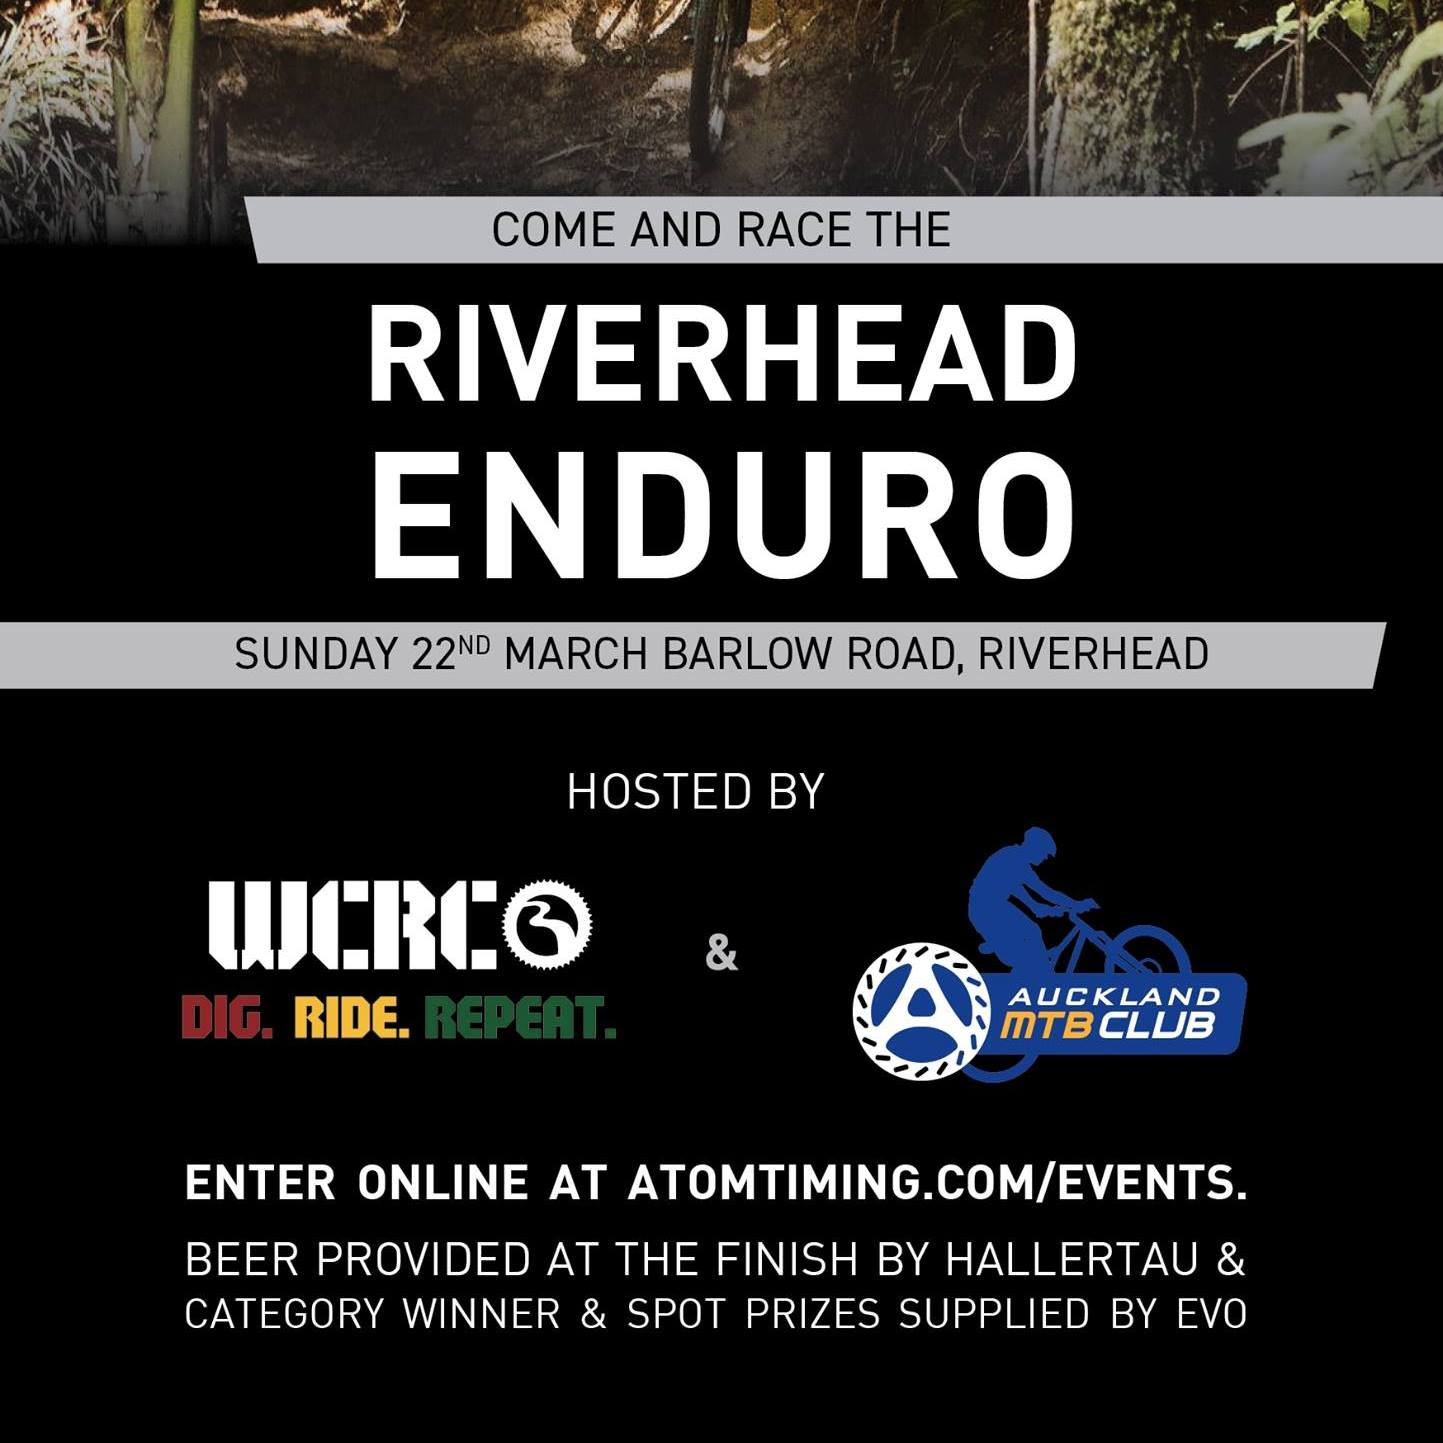 2020 Riverhead Enduro Sunday March 22nd enter online at atomtiming.com